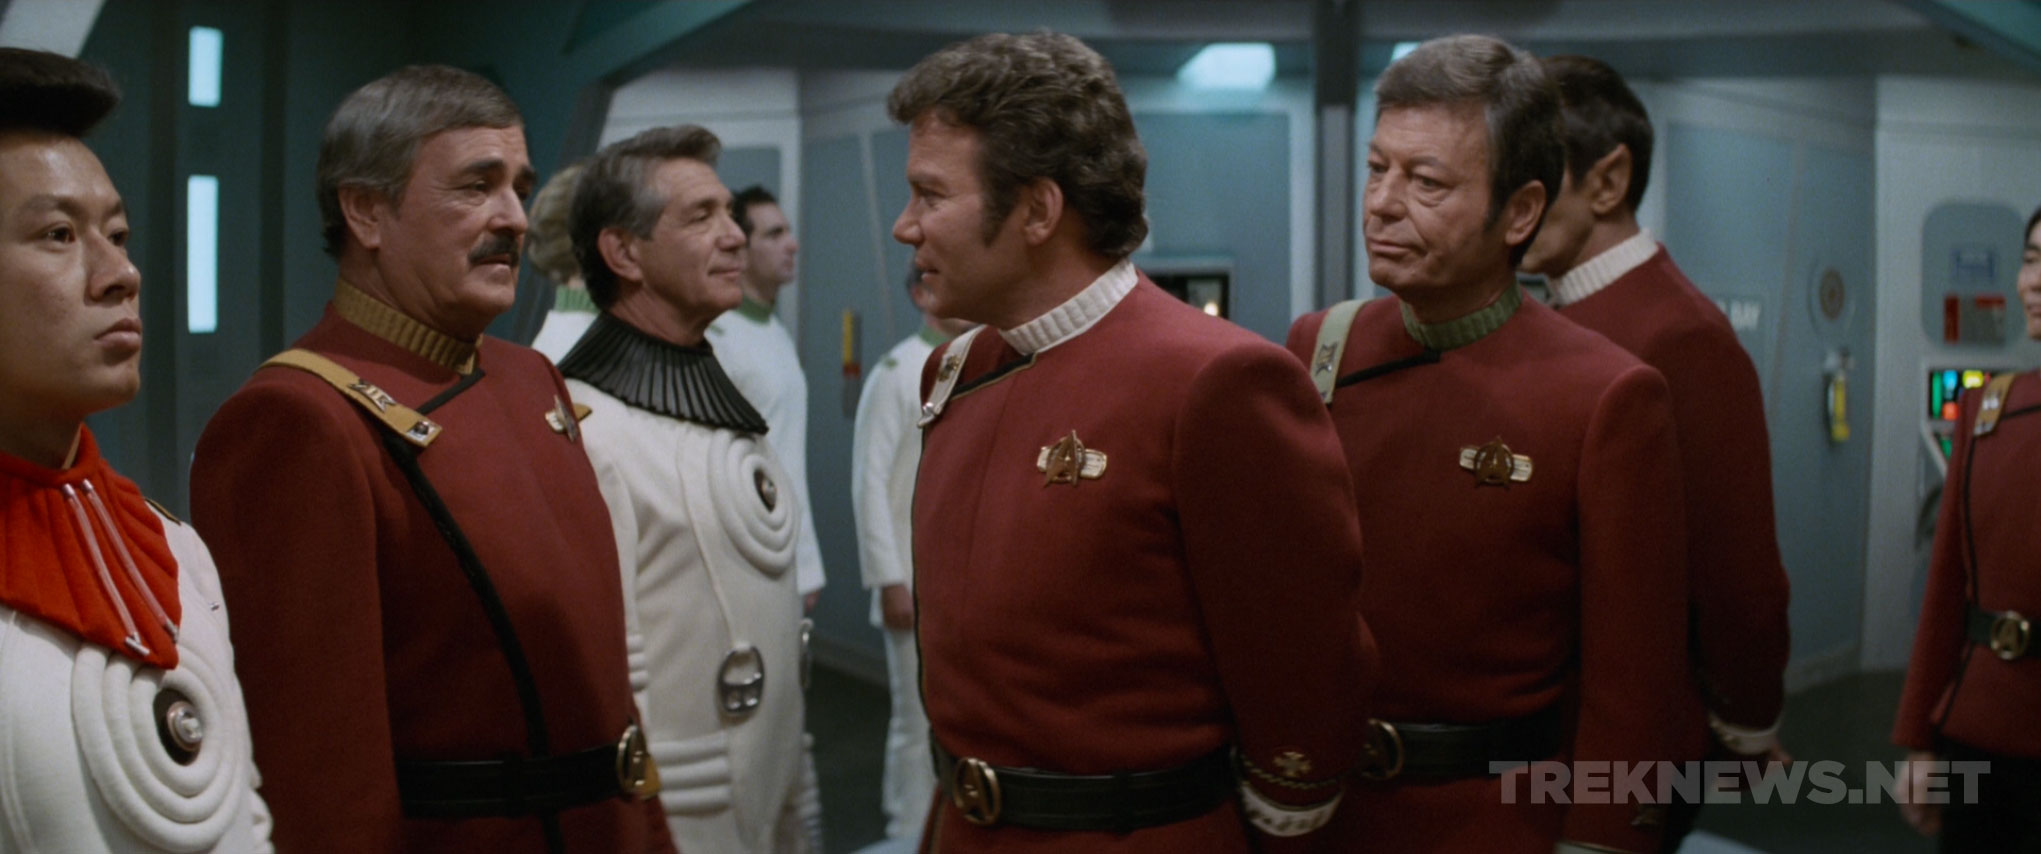 Star Trek II: The Wrath Of Khan Backgrounds, Compatible - PC, Mobile, Gadgets| 2041x854 px